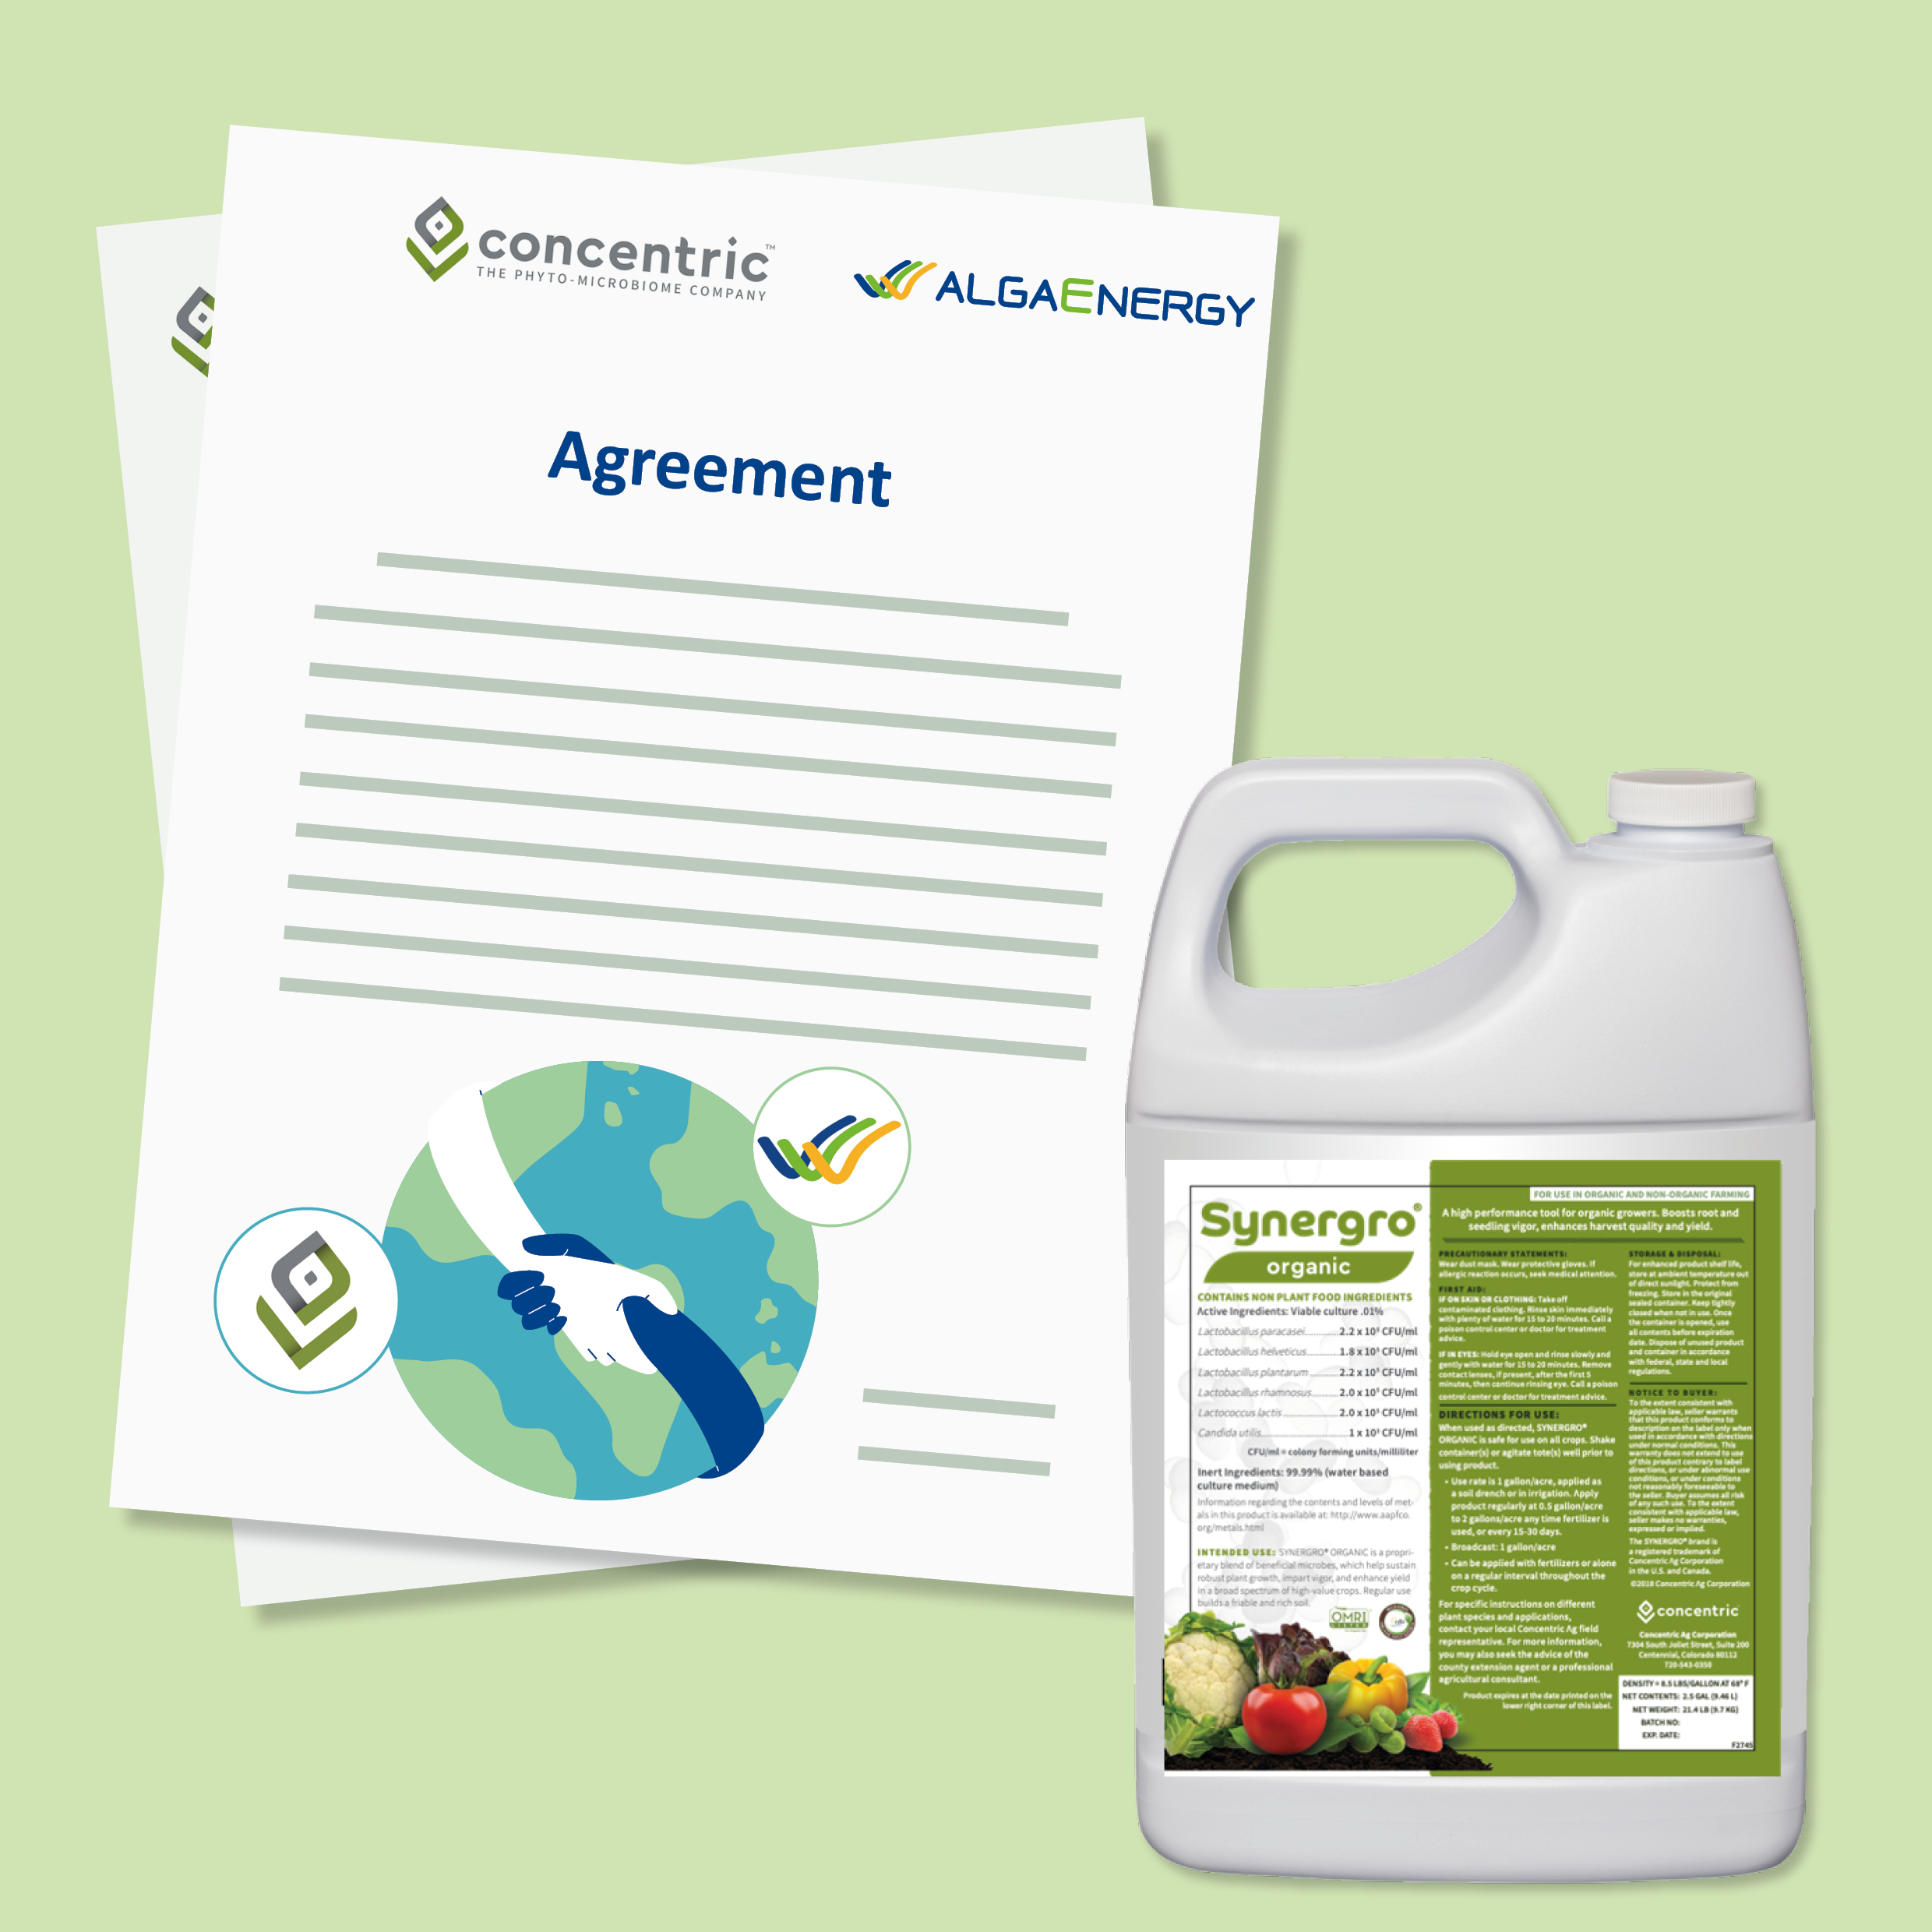 AlgaEnergy y Concentric Ag sellan un acuerdo exclusivo internacional para el desarrollo y distribución de productos